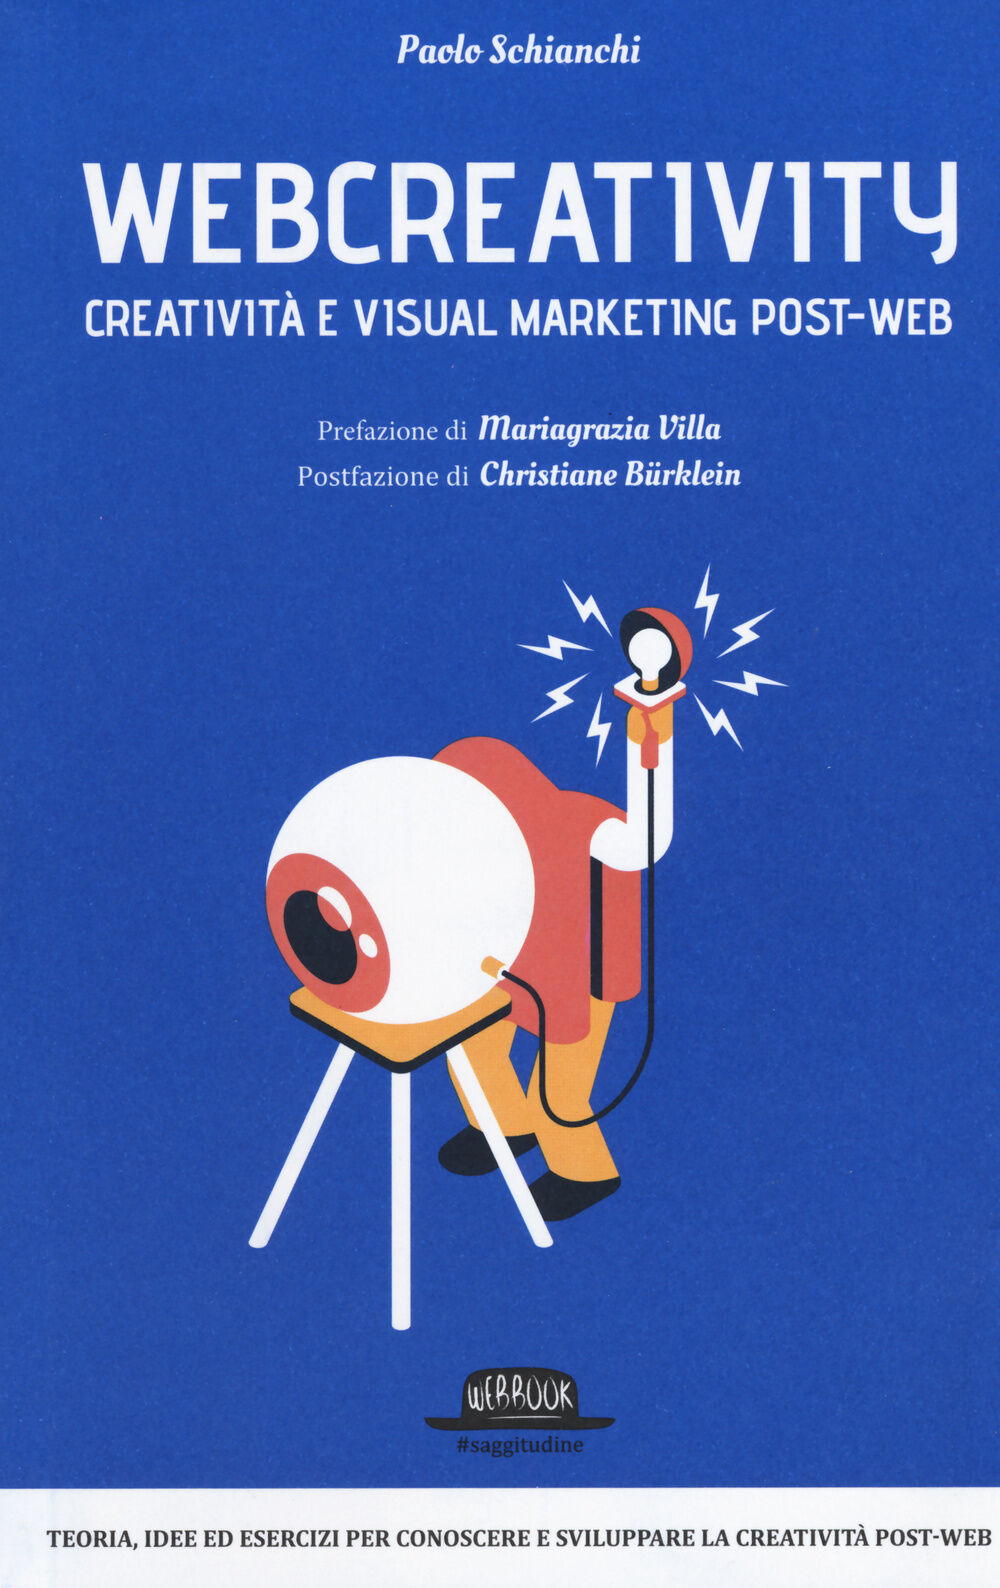 Webcreativity. Creatività e visual marketing post-web